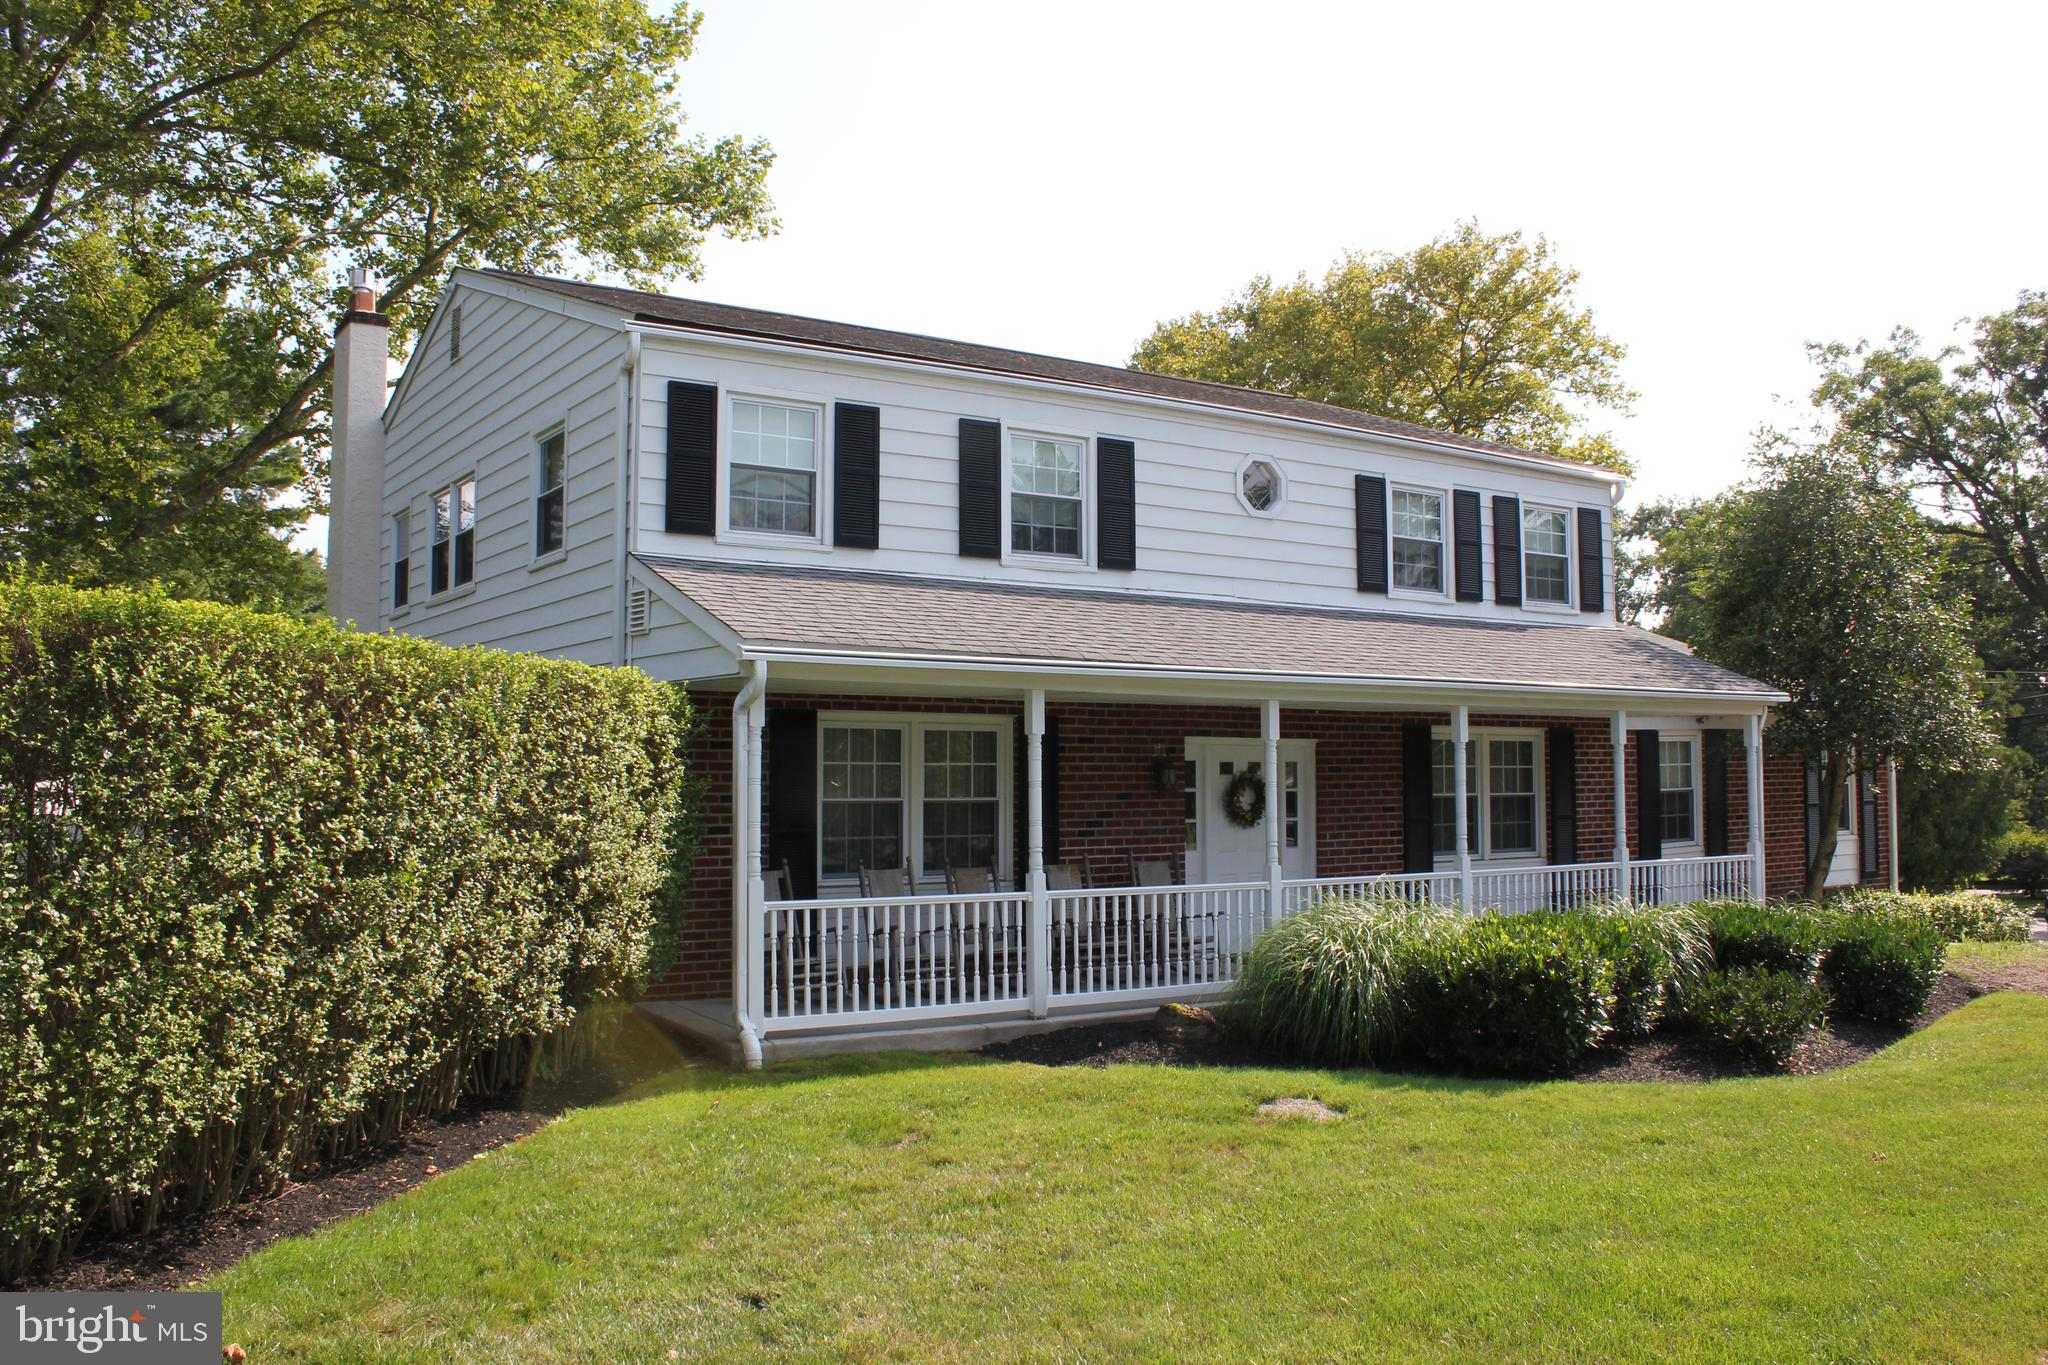 2052 SPRING MILL ROAD, LAFAYETTE HILL, PA 19444